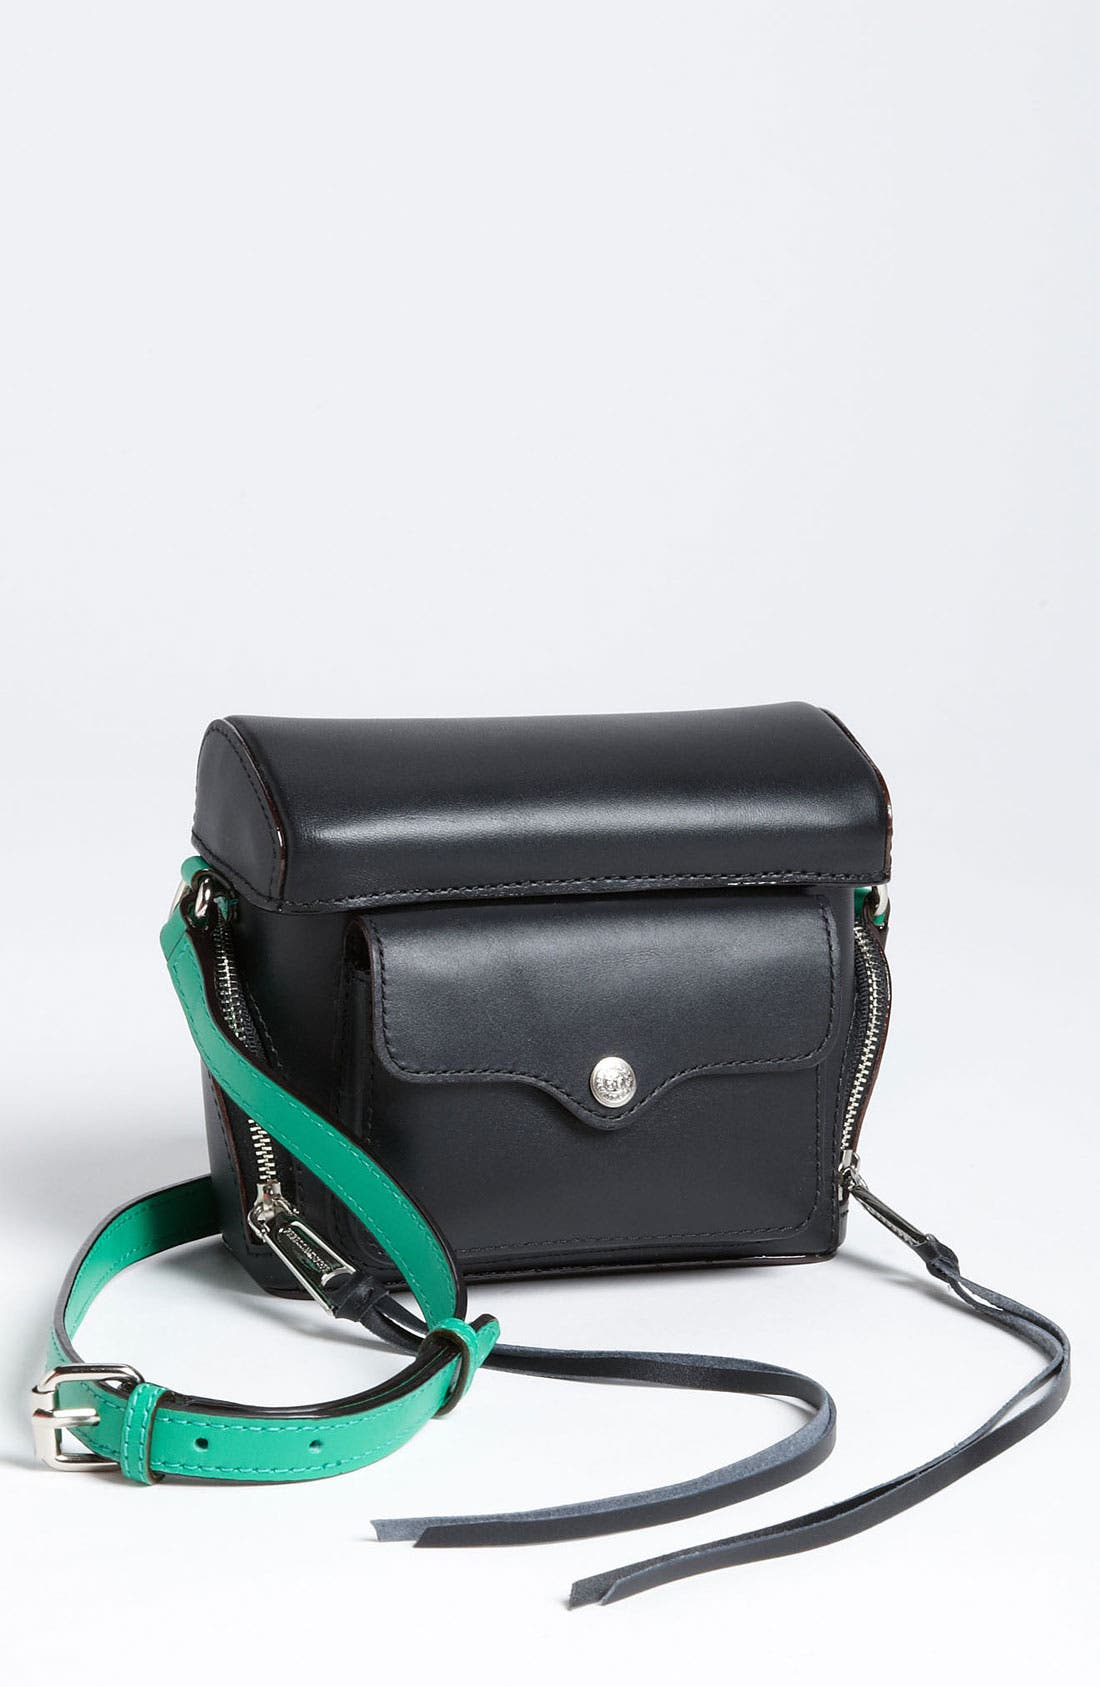 Main Image - Rebecca Minkoff 'Craig' Crossbody Camera Bag